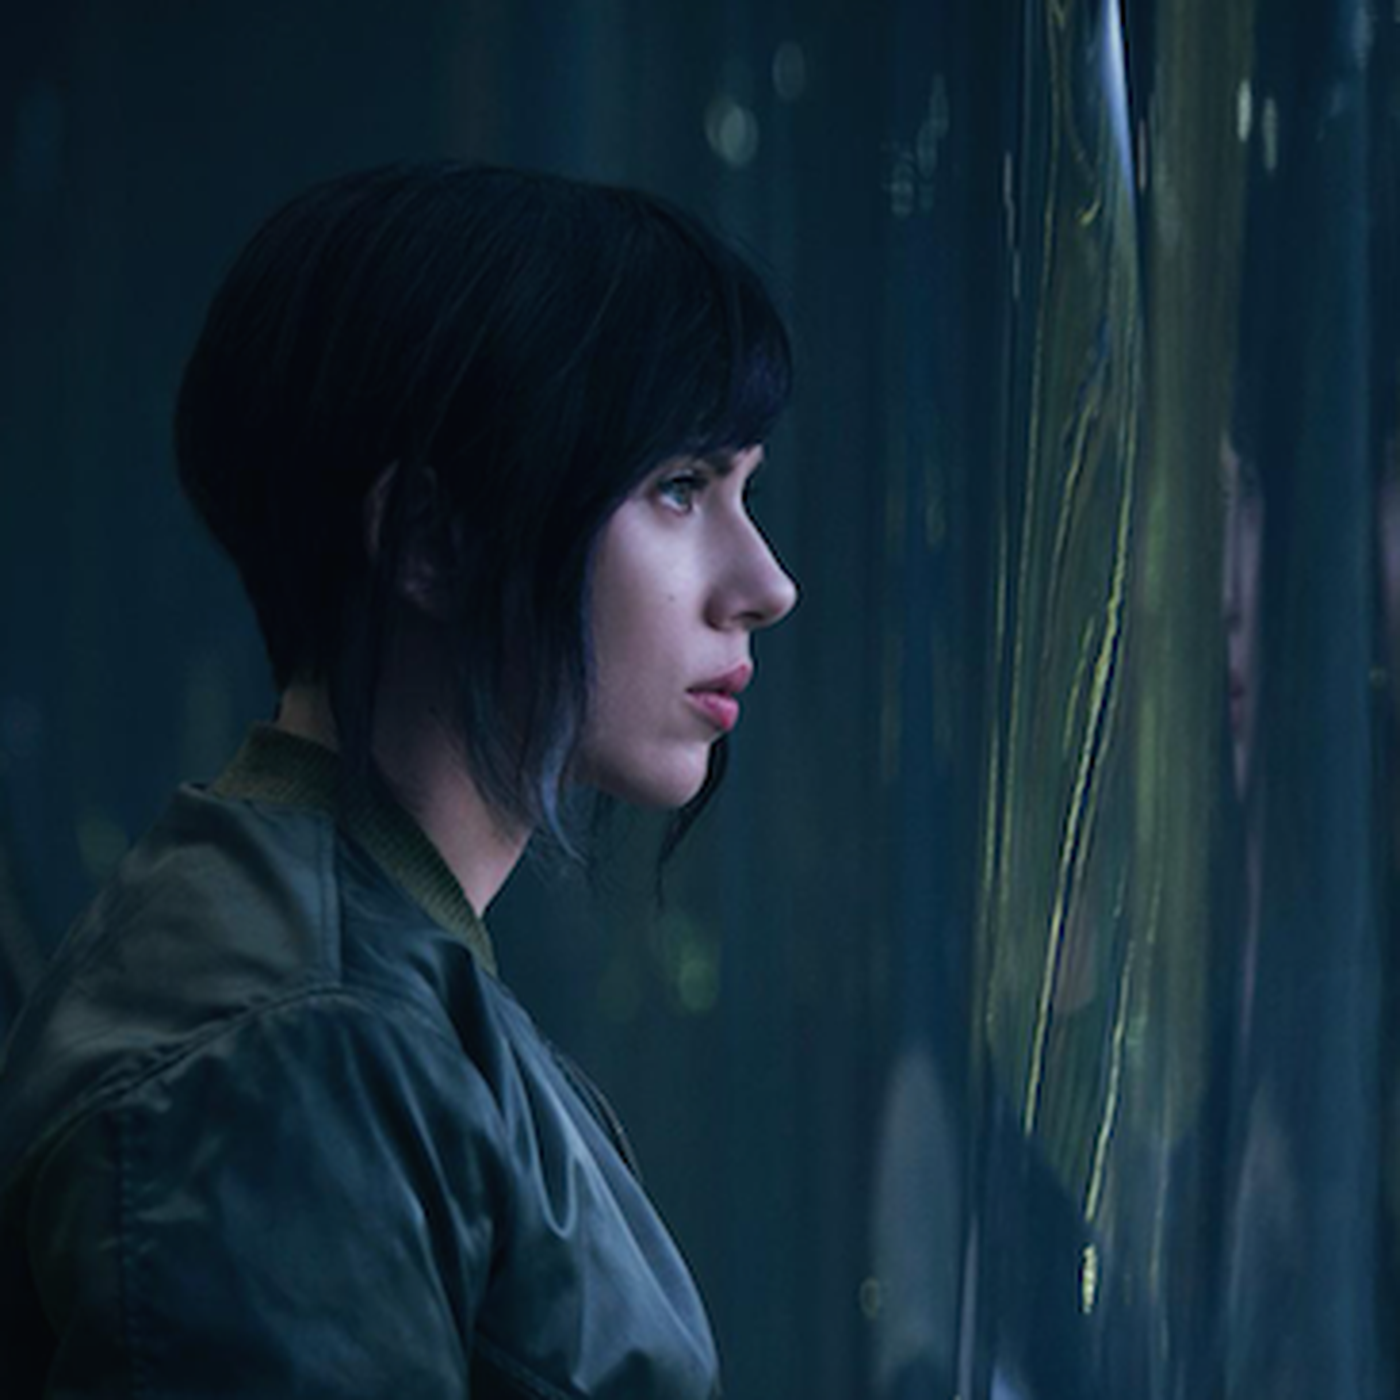 Scarlett Johansson Finally Addresses Ghost In The Shell Whitewashing Controversy Polygon